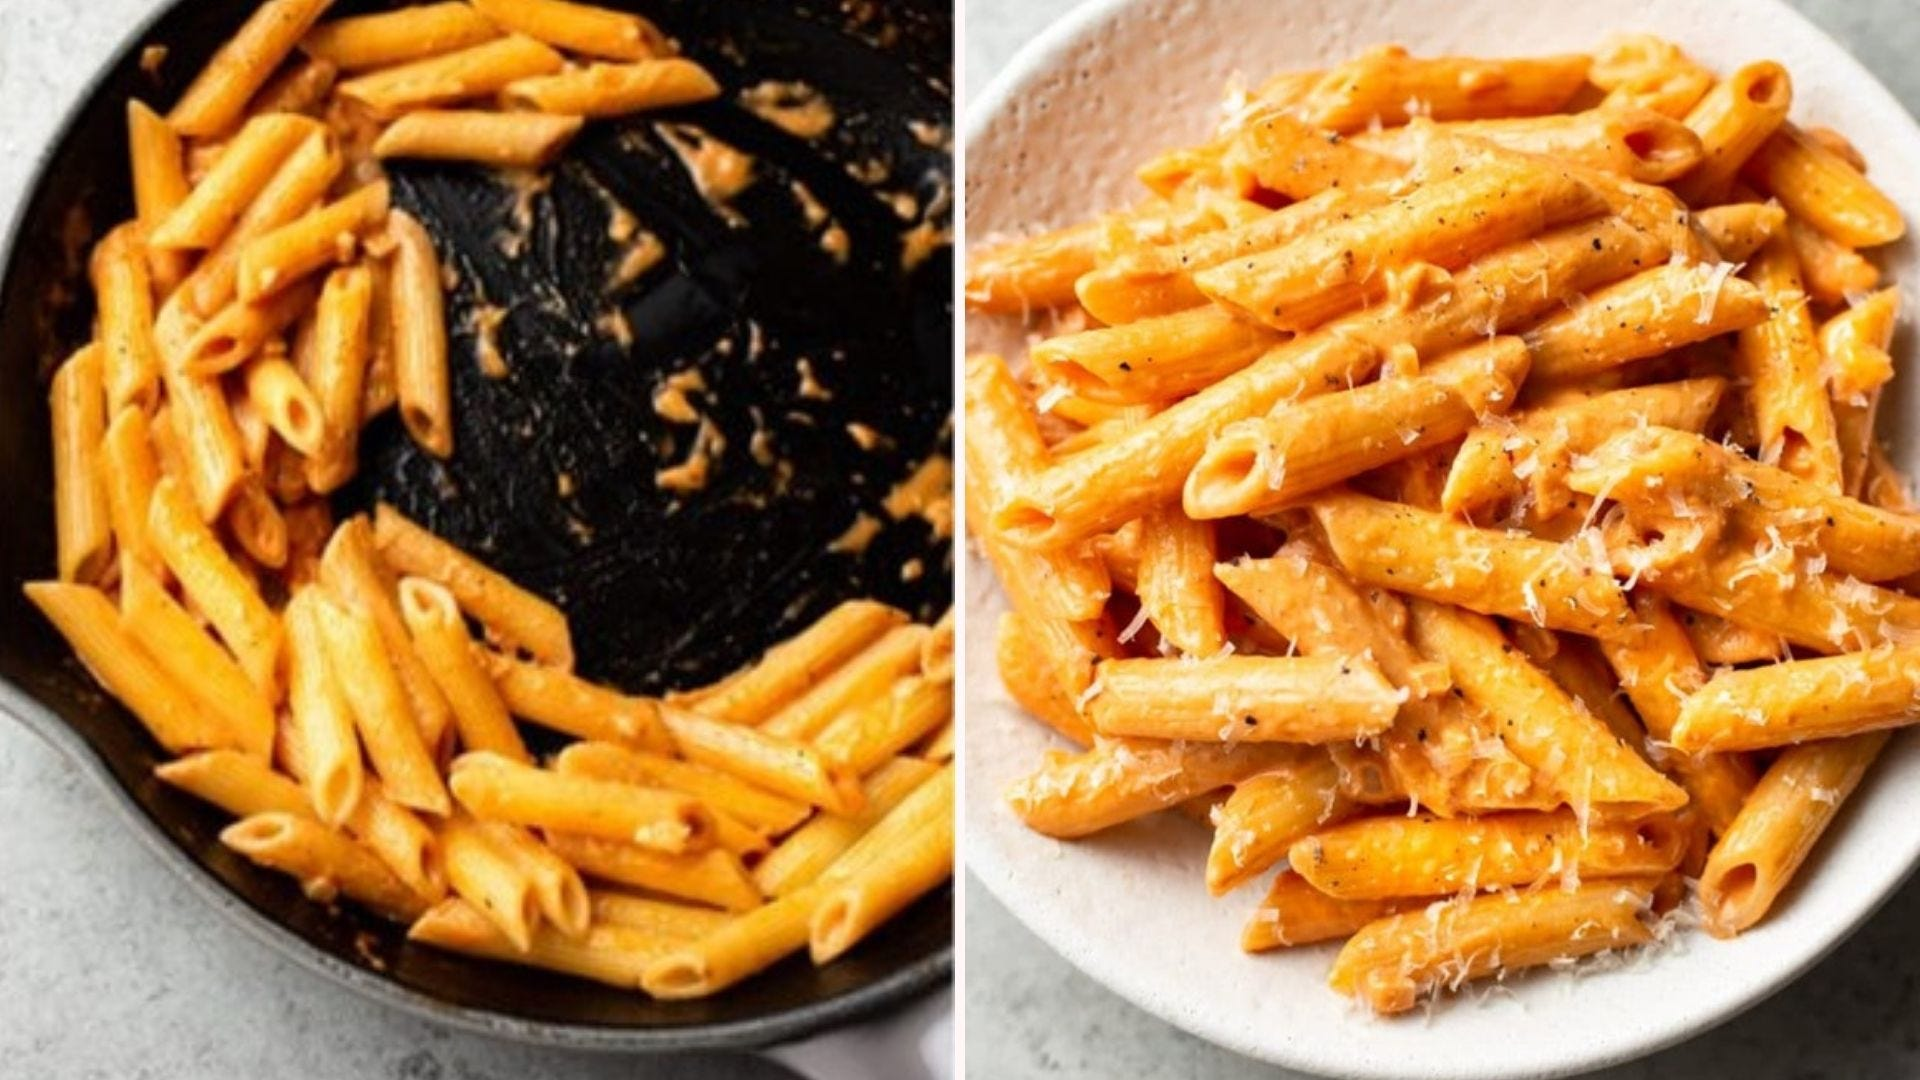 Two side by side images: the left image is penne alla vodka in a deep skillet and the right image is of the finished pasta dish, in a white bowl finished with parmesan cheese.